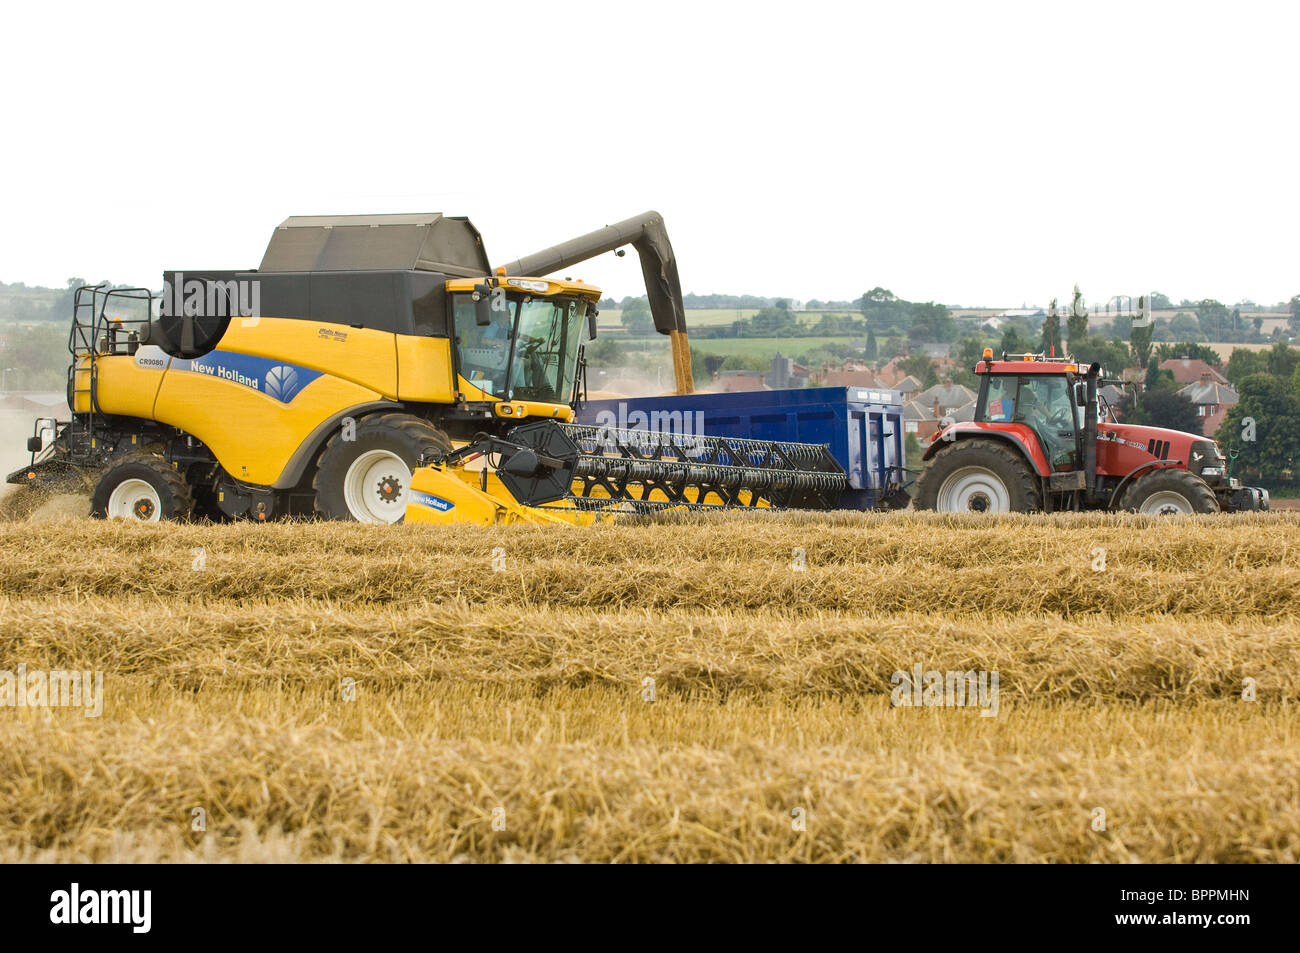 New Holland CR 9080 combined harvester harvesting a field of wheat - Stock Image